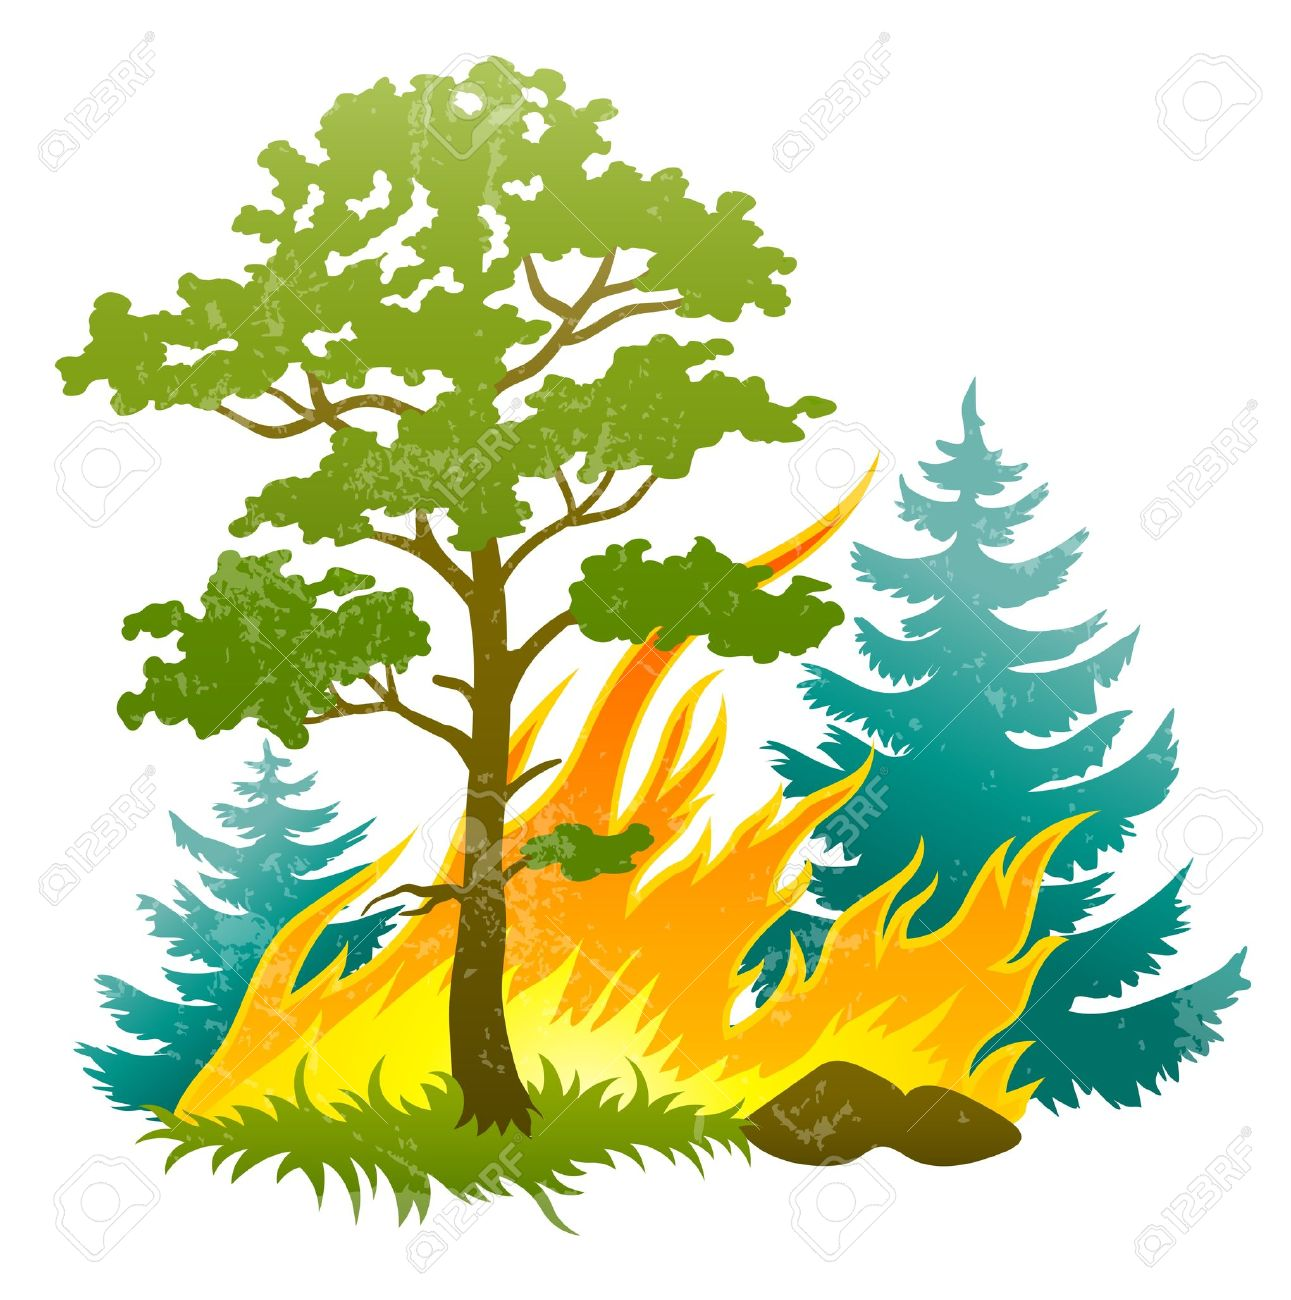 1291x1300 Wildfire Disaster With Burning Forest Tree And Fir Trees